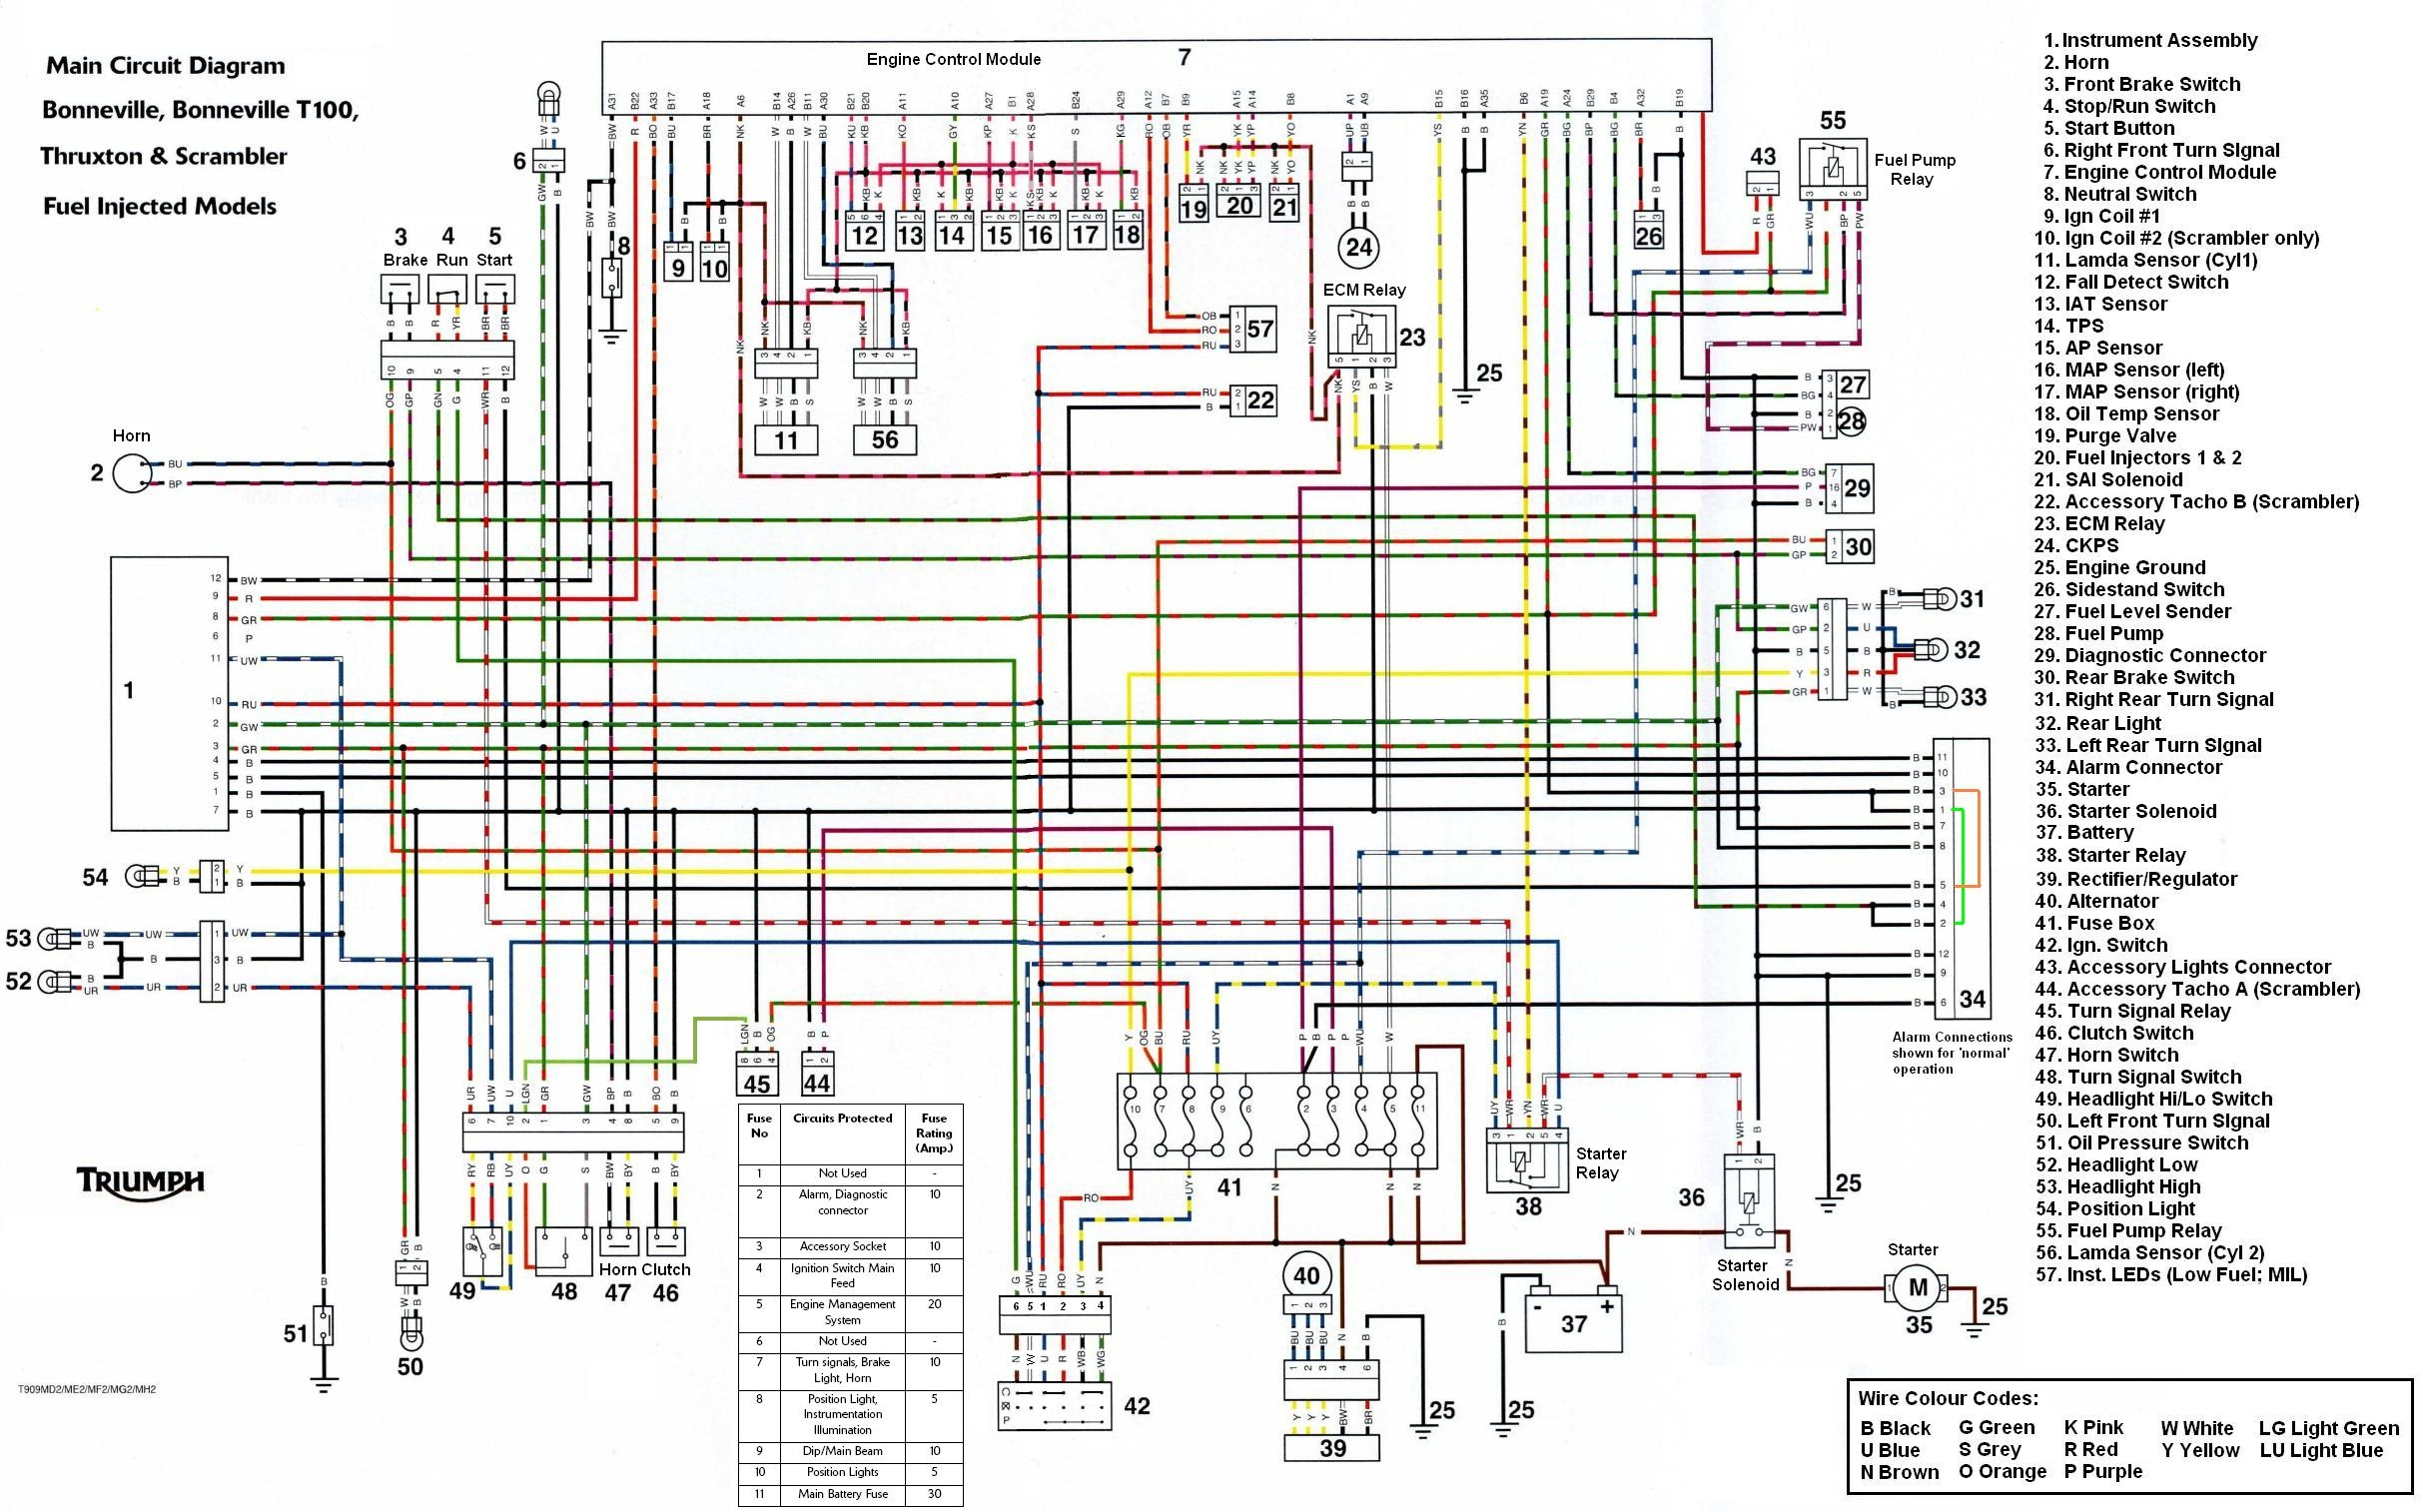 T100 Wiring Diagram Another Blog About 1997 Toyota Triumph Bonneville Thruxton Scrambler Evan Rh Cycles Evanfell Com 1995